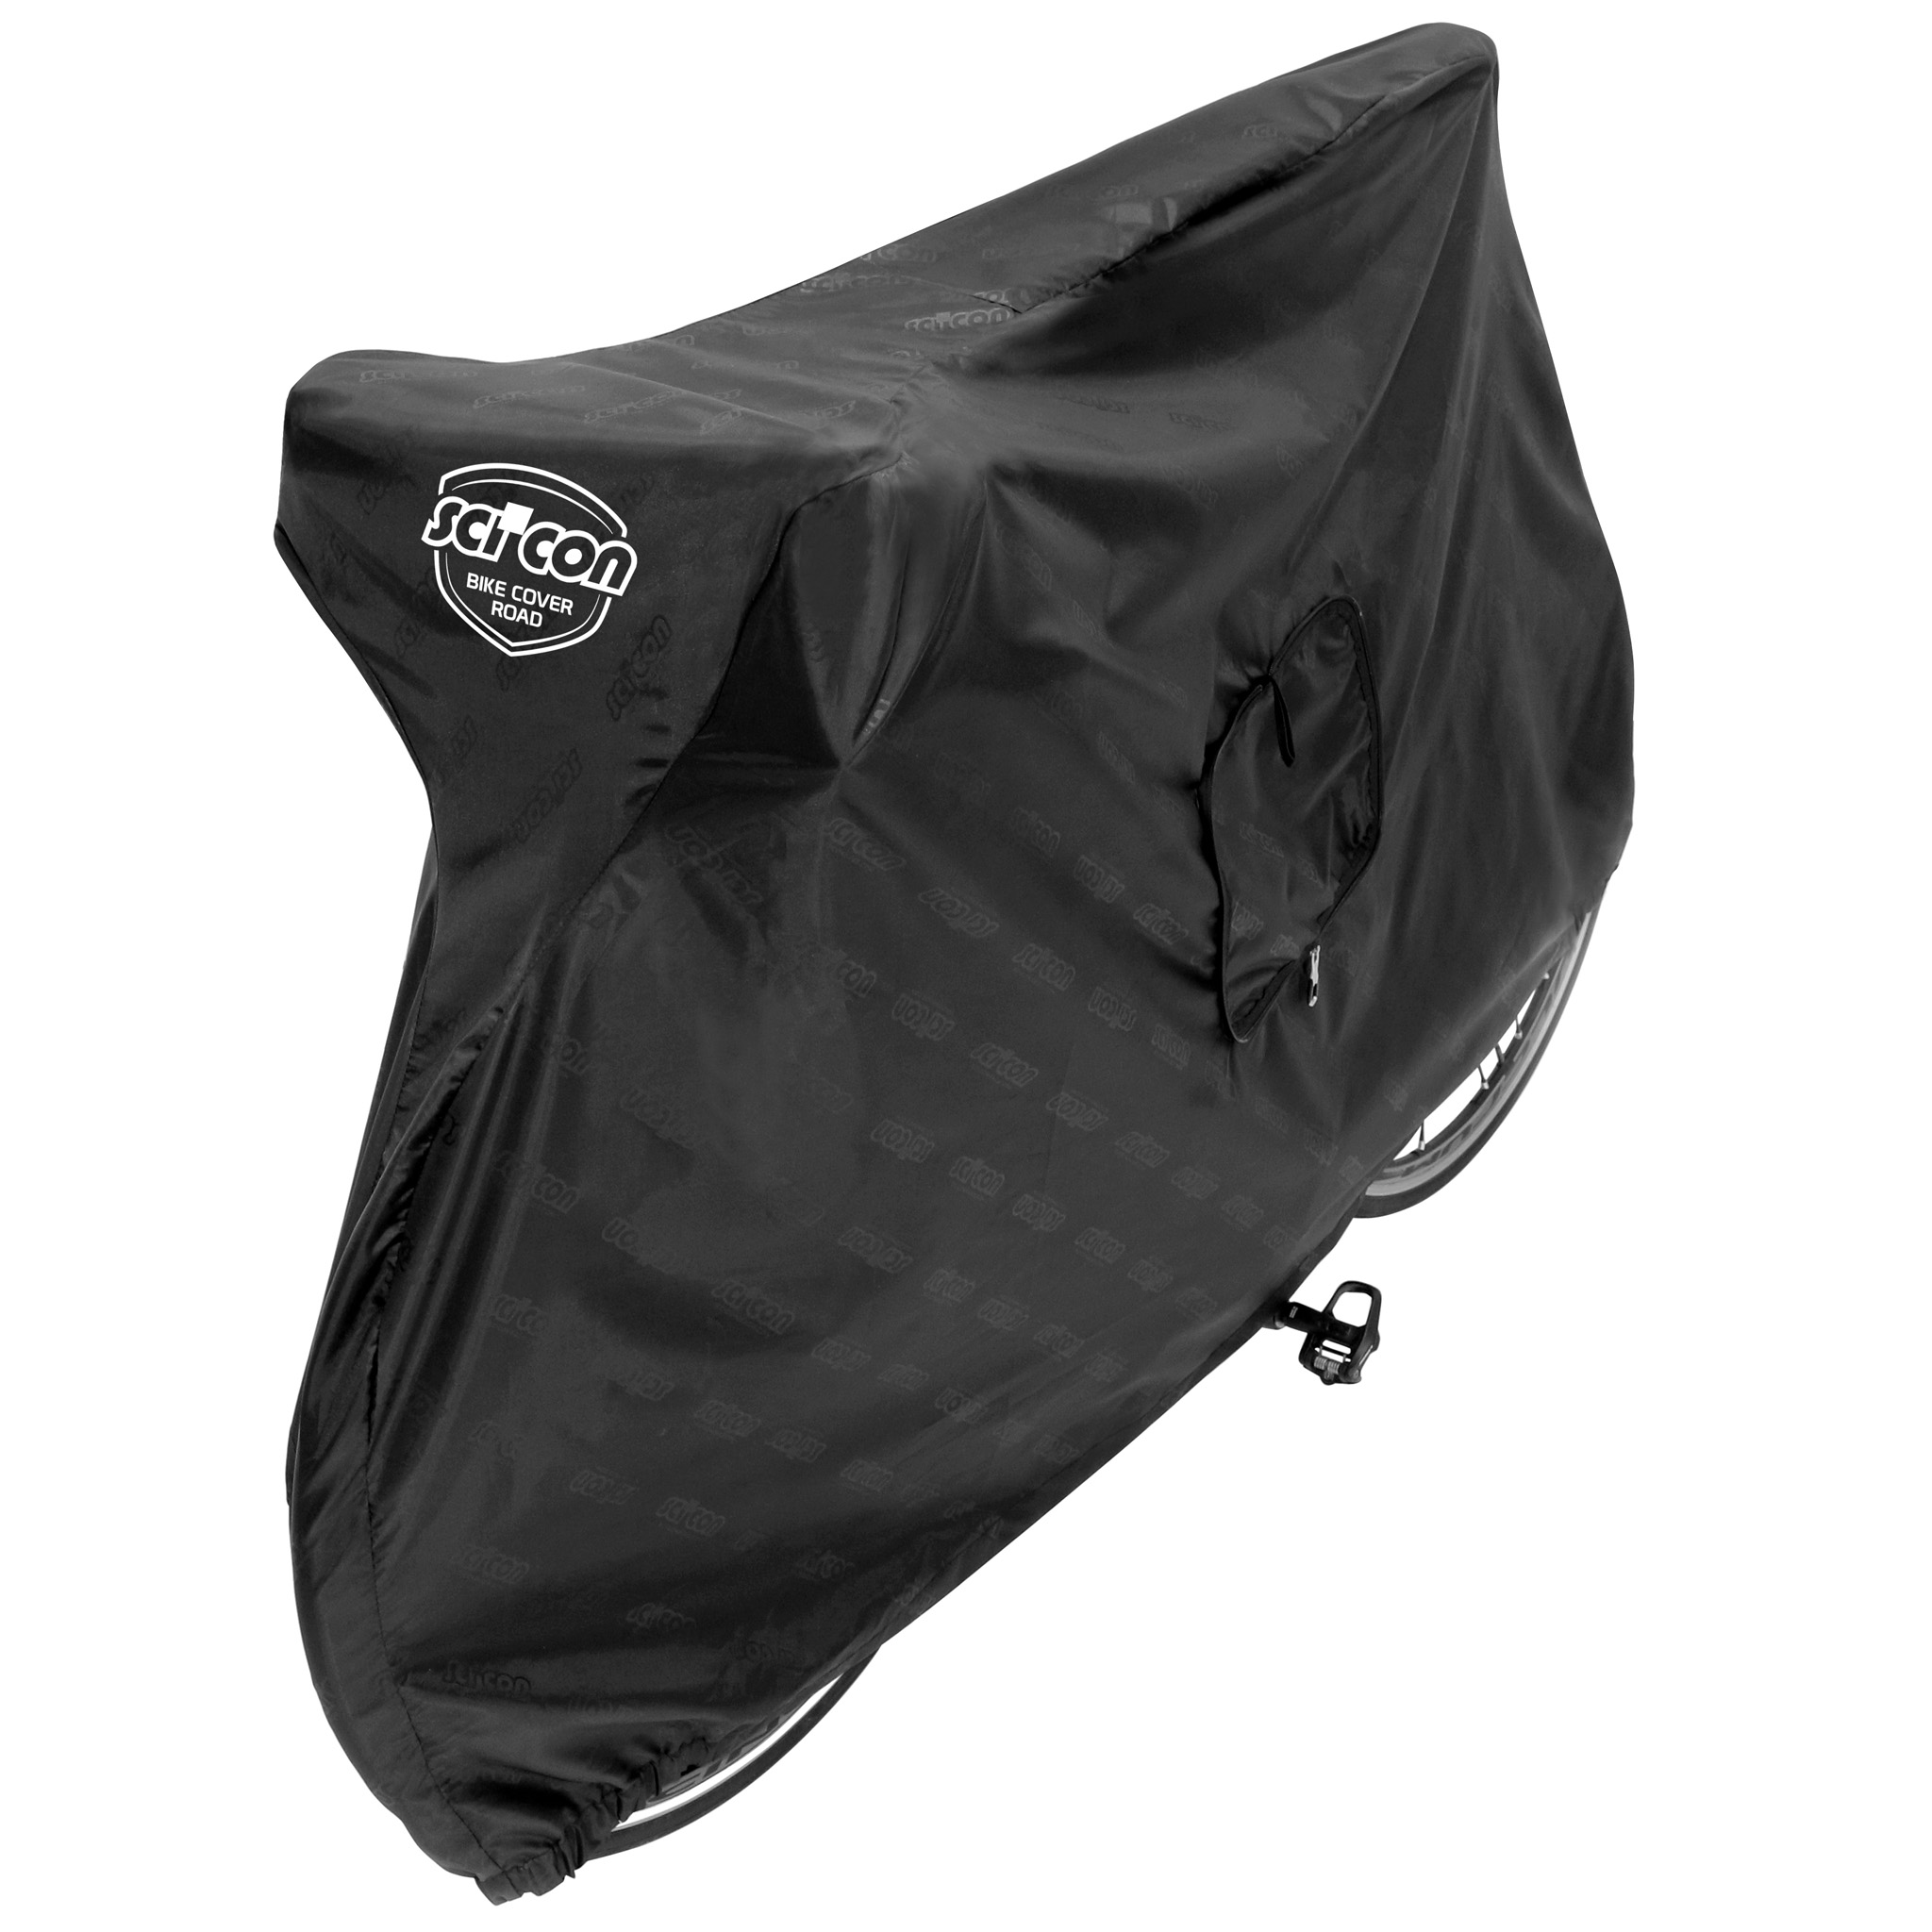 Housse de protection pour v lo de course scicon bike cover for Housse protection velo